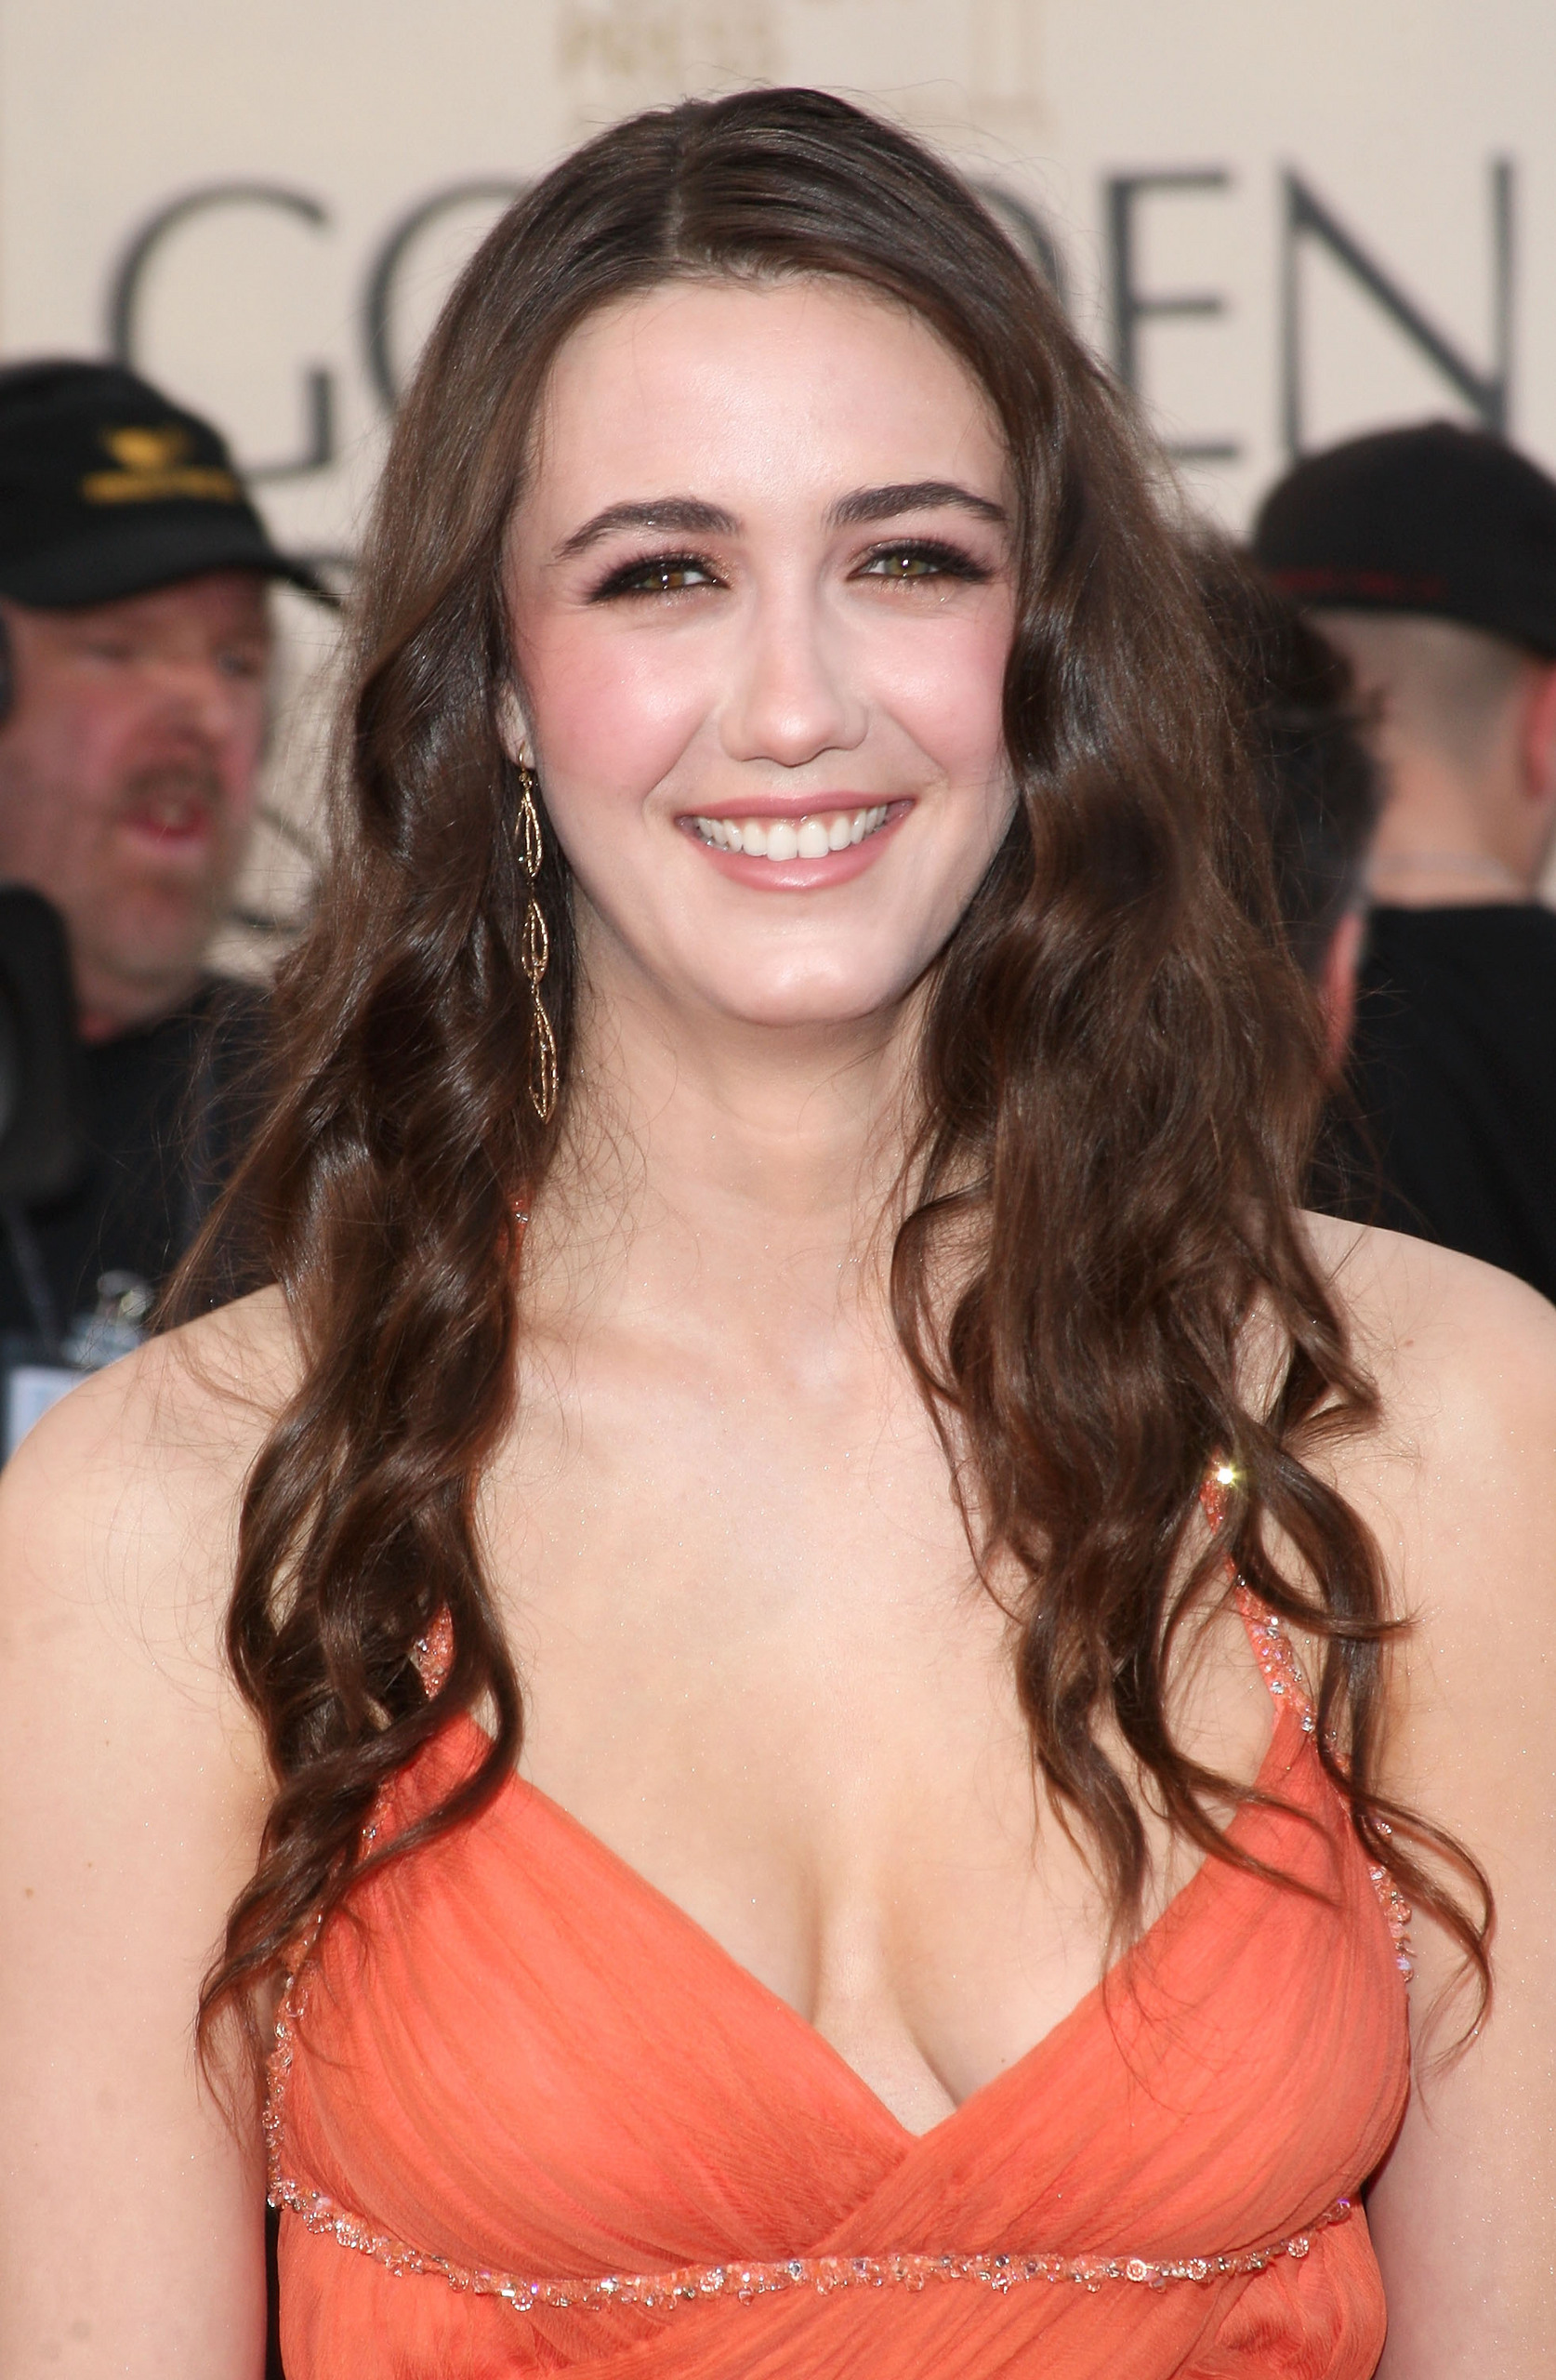 madeline zima 2017madeline zima 2015, madeline zima weight, madeline zima listal, madeline zima 2017, madeline zima facebook, madeline zima foto, madeline zima фото, madeline zima инстаграм, madeline zima wikipedia, madeline zima, madeline zima instagram, madeline zima wiki, madeline zima vampire diaries, madeline zima the nanny, madeline zima imdb, madeline zima net worth, madeline zima heroes